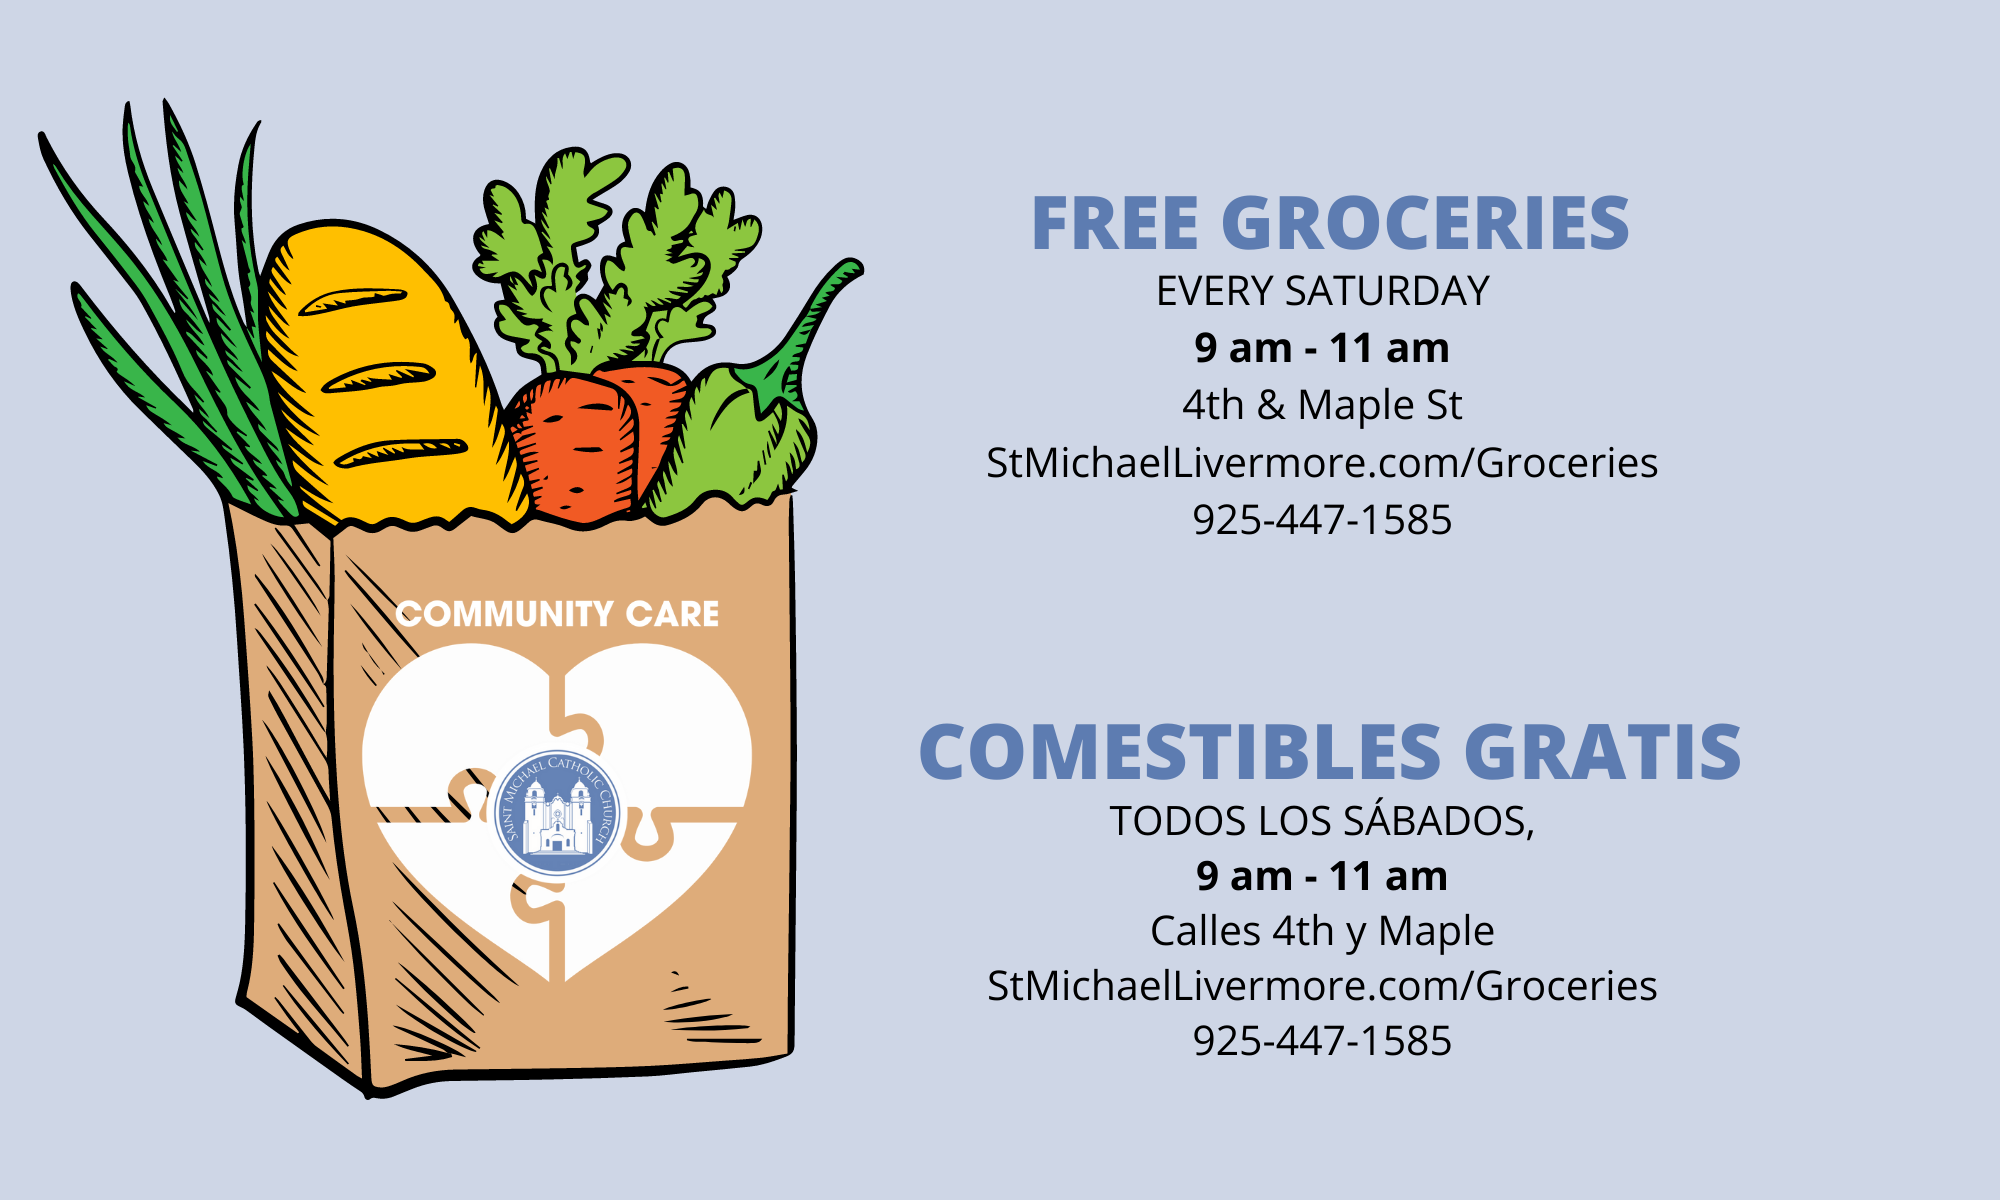 Free Groceries Every Sat